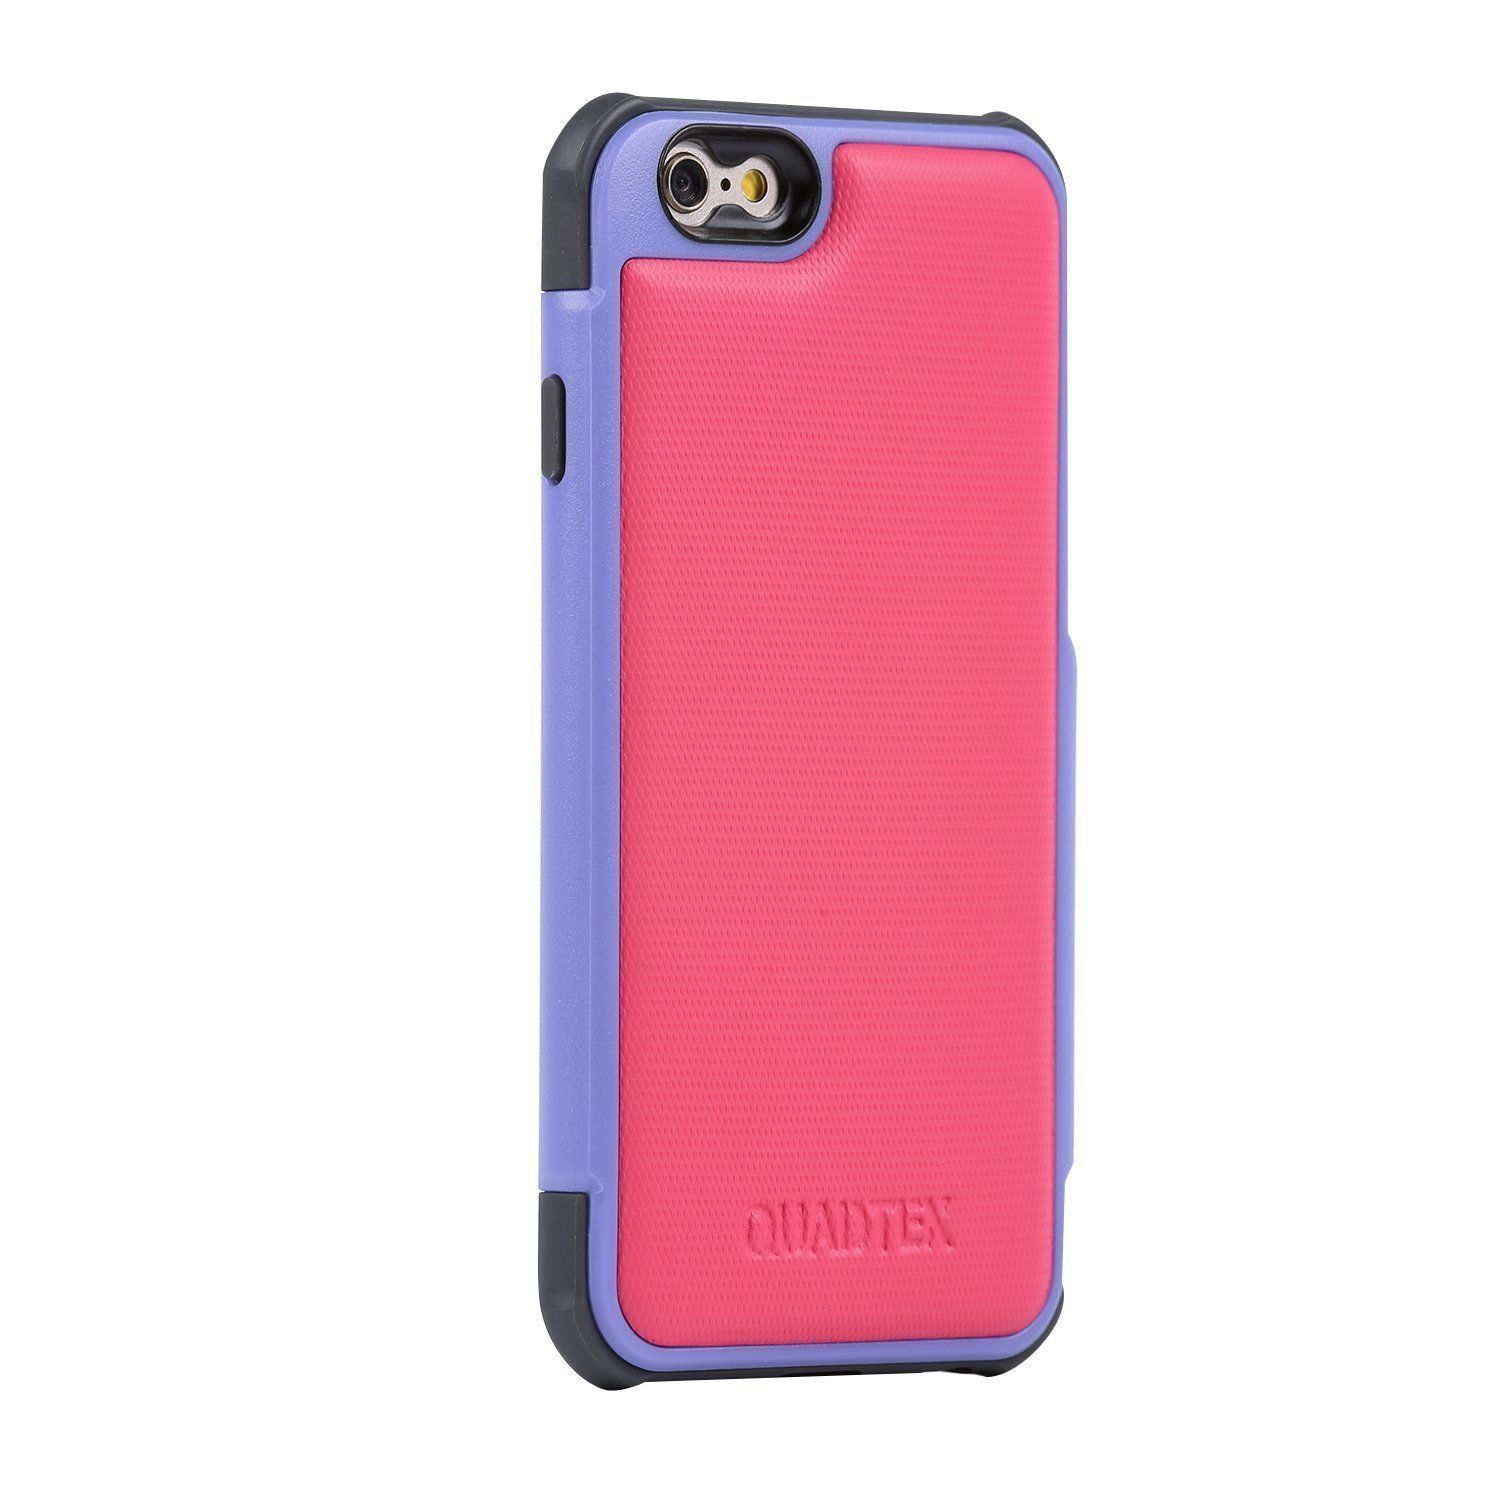 ODOYO QUAD MAX Triple Layer Protection Series for iPhone 6